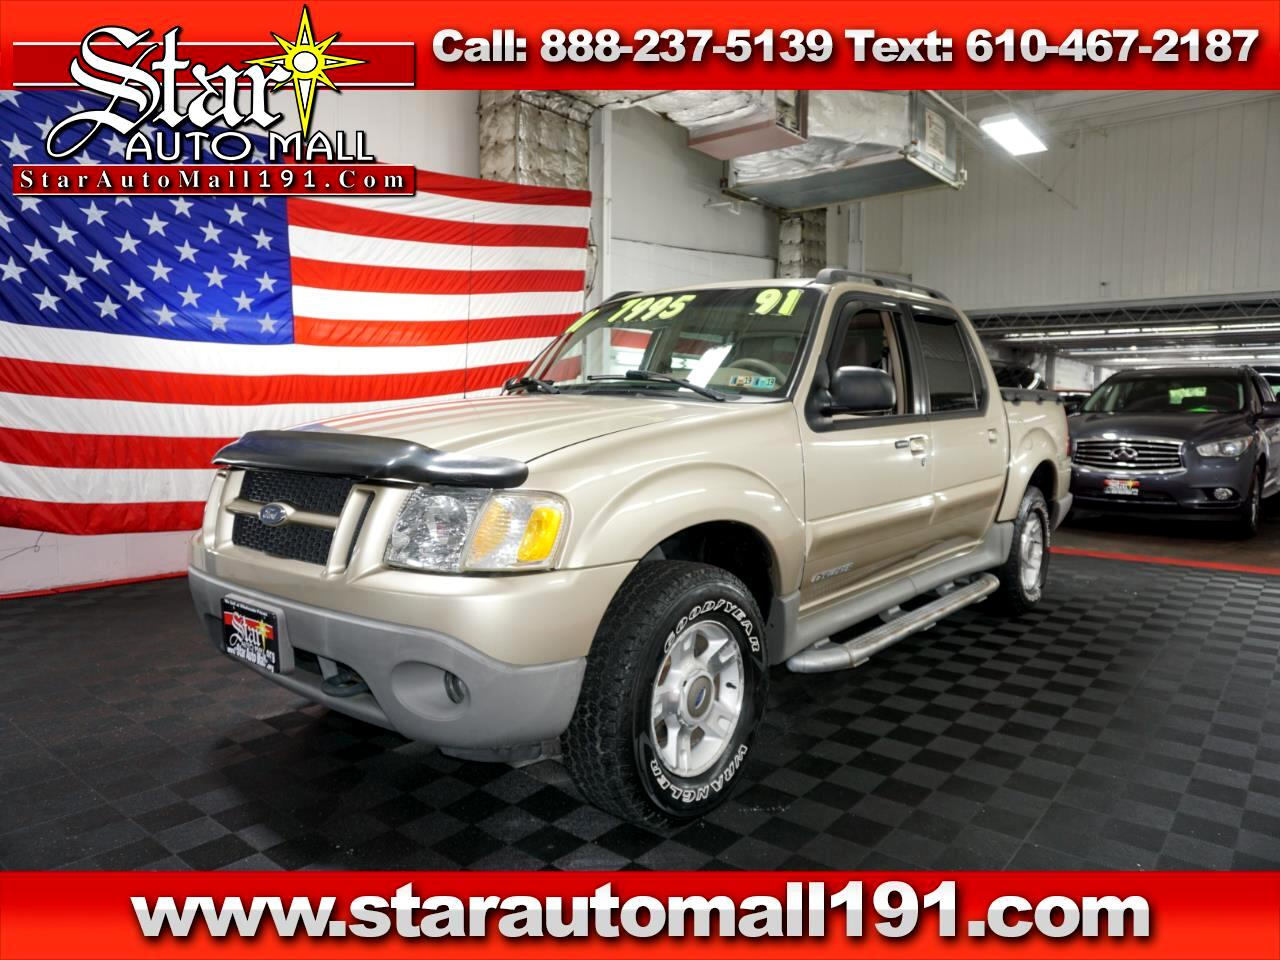 2001 Ford Explorer Sport Trac 4dr 126